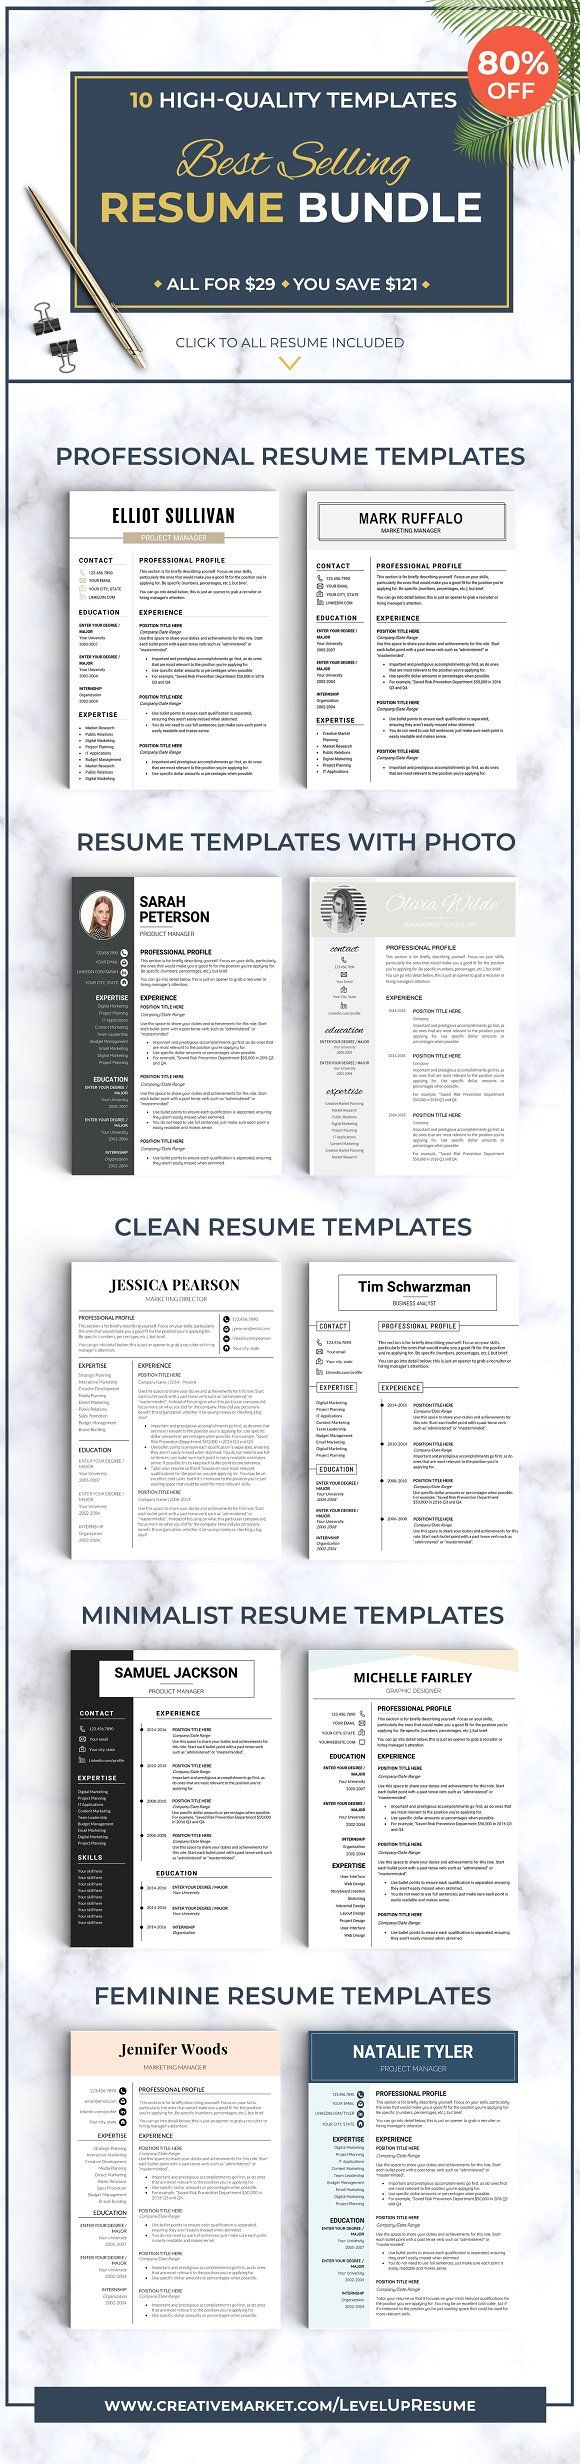 Best Selling RESUME BUNDLE CV 4033